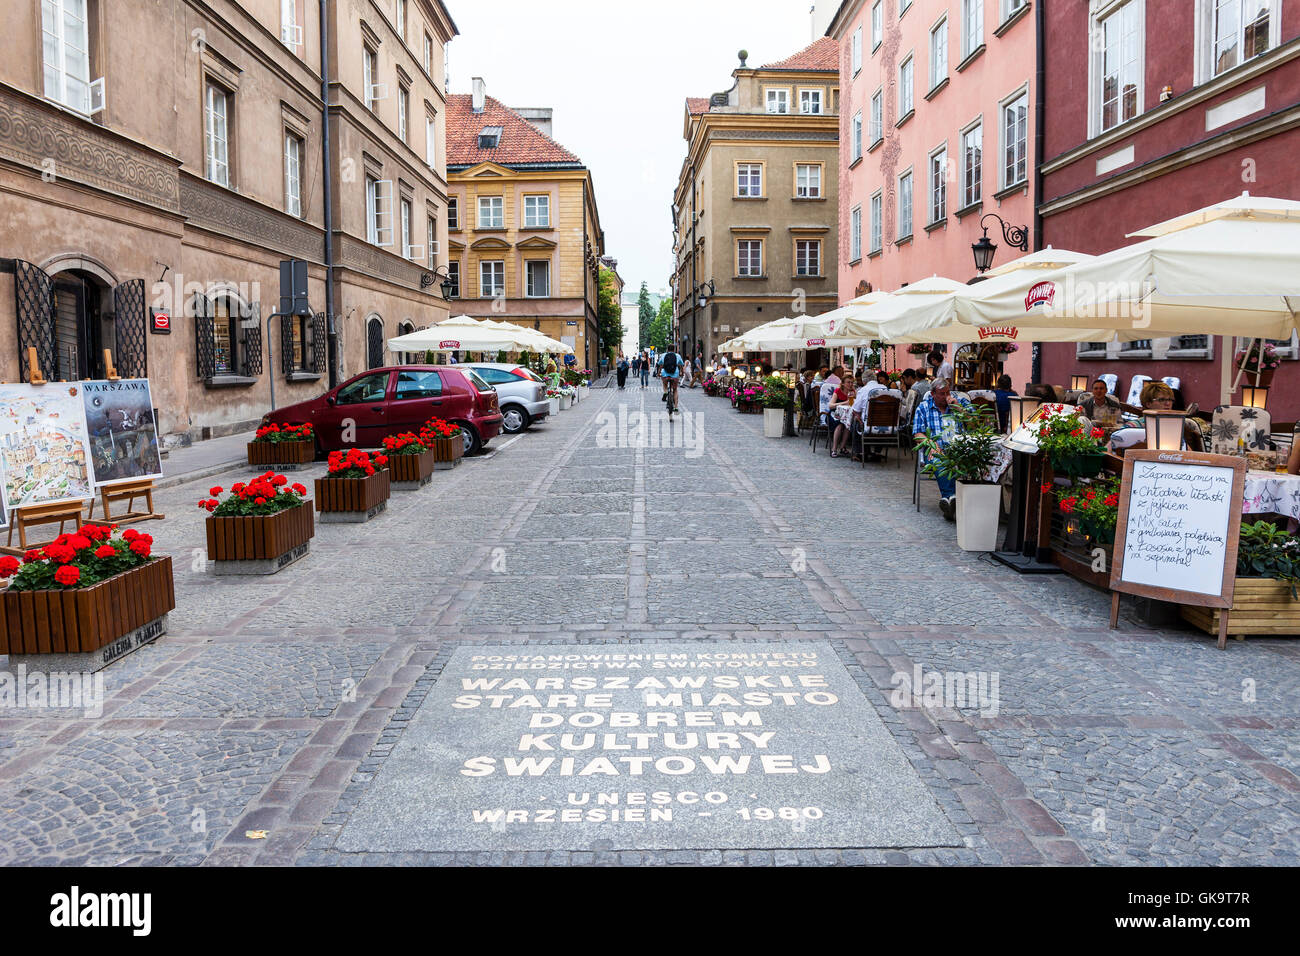 Alley Warsaw - Stock Image